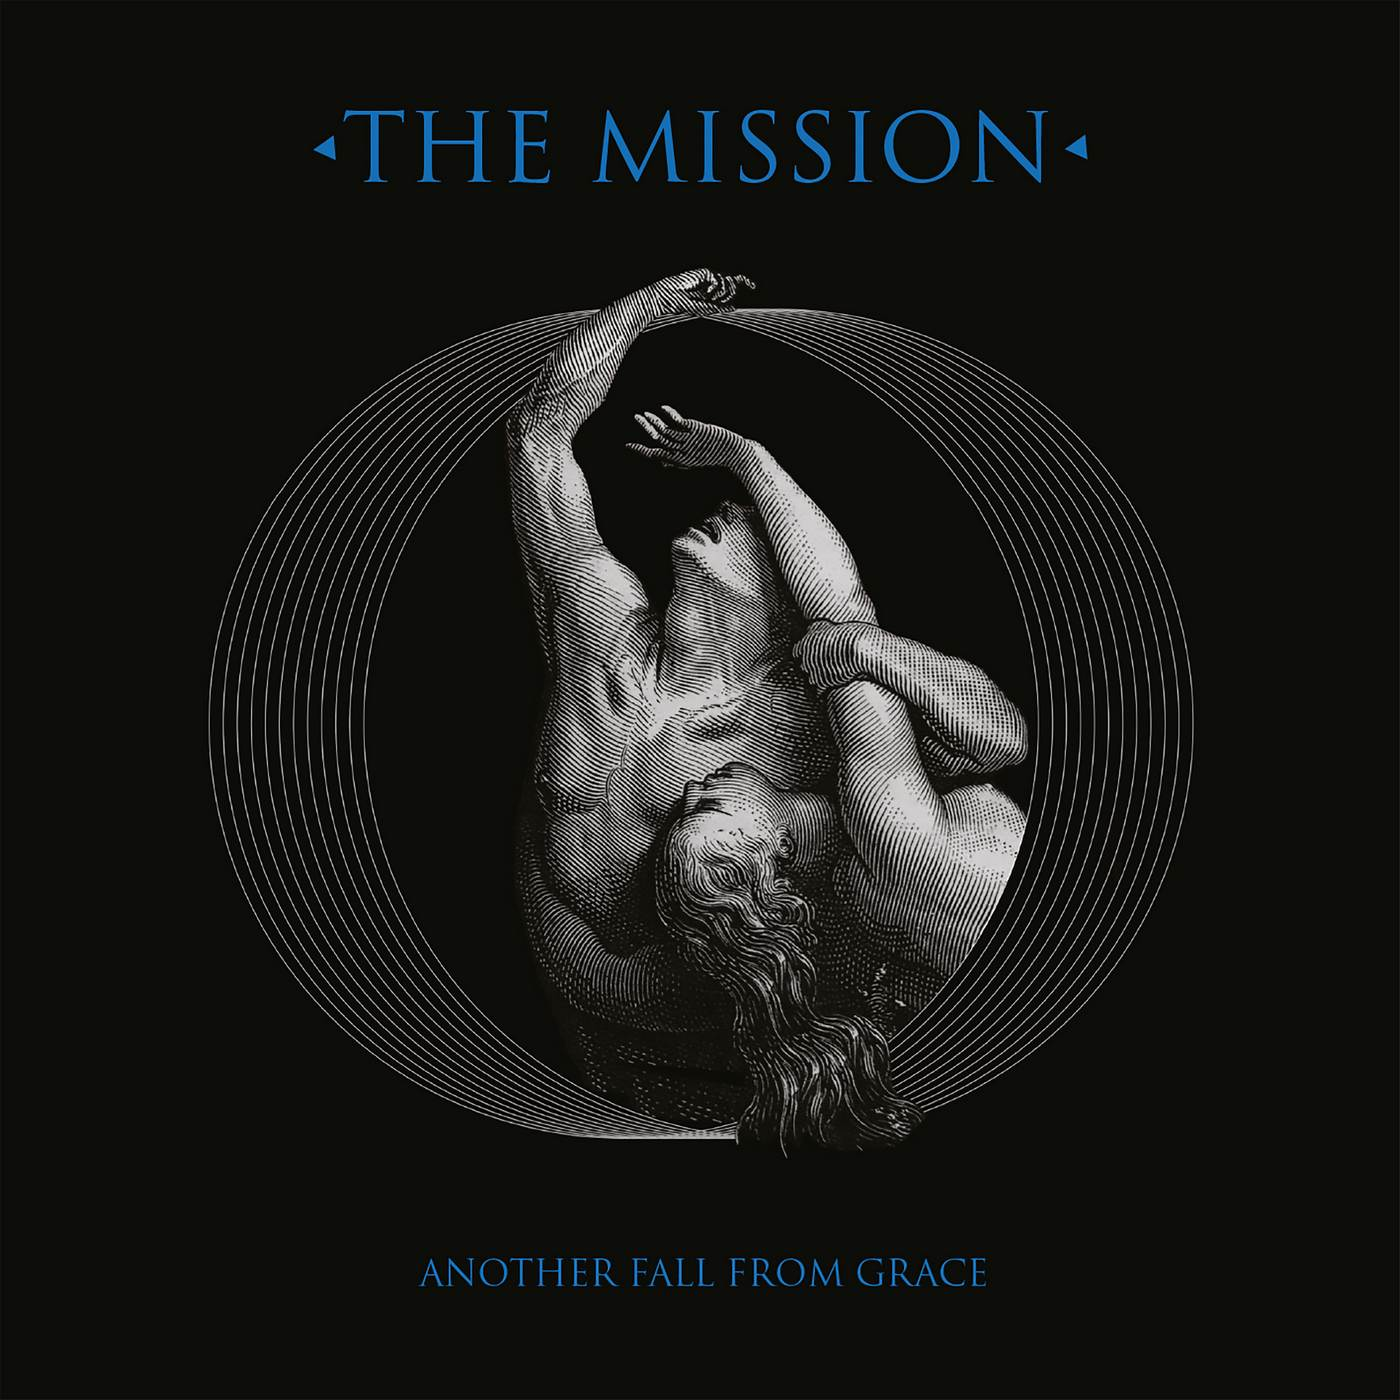 The Mission: Another Fall From Grace (2016) Book Cover